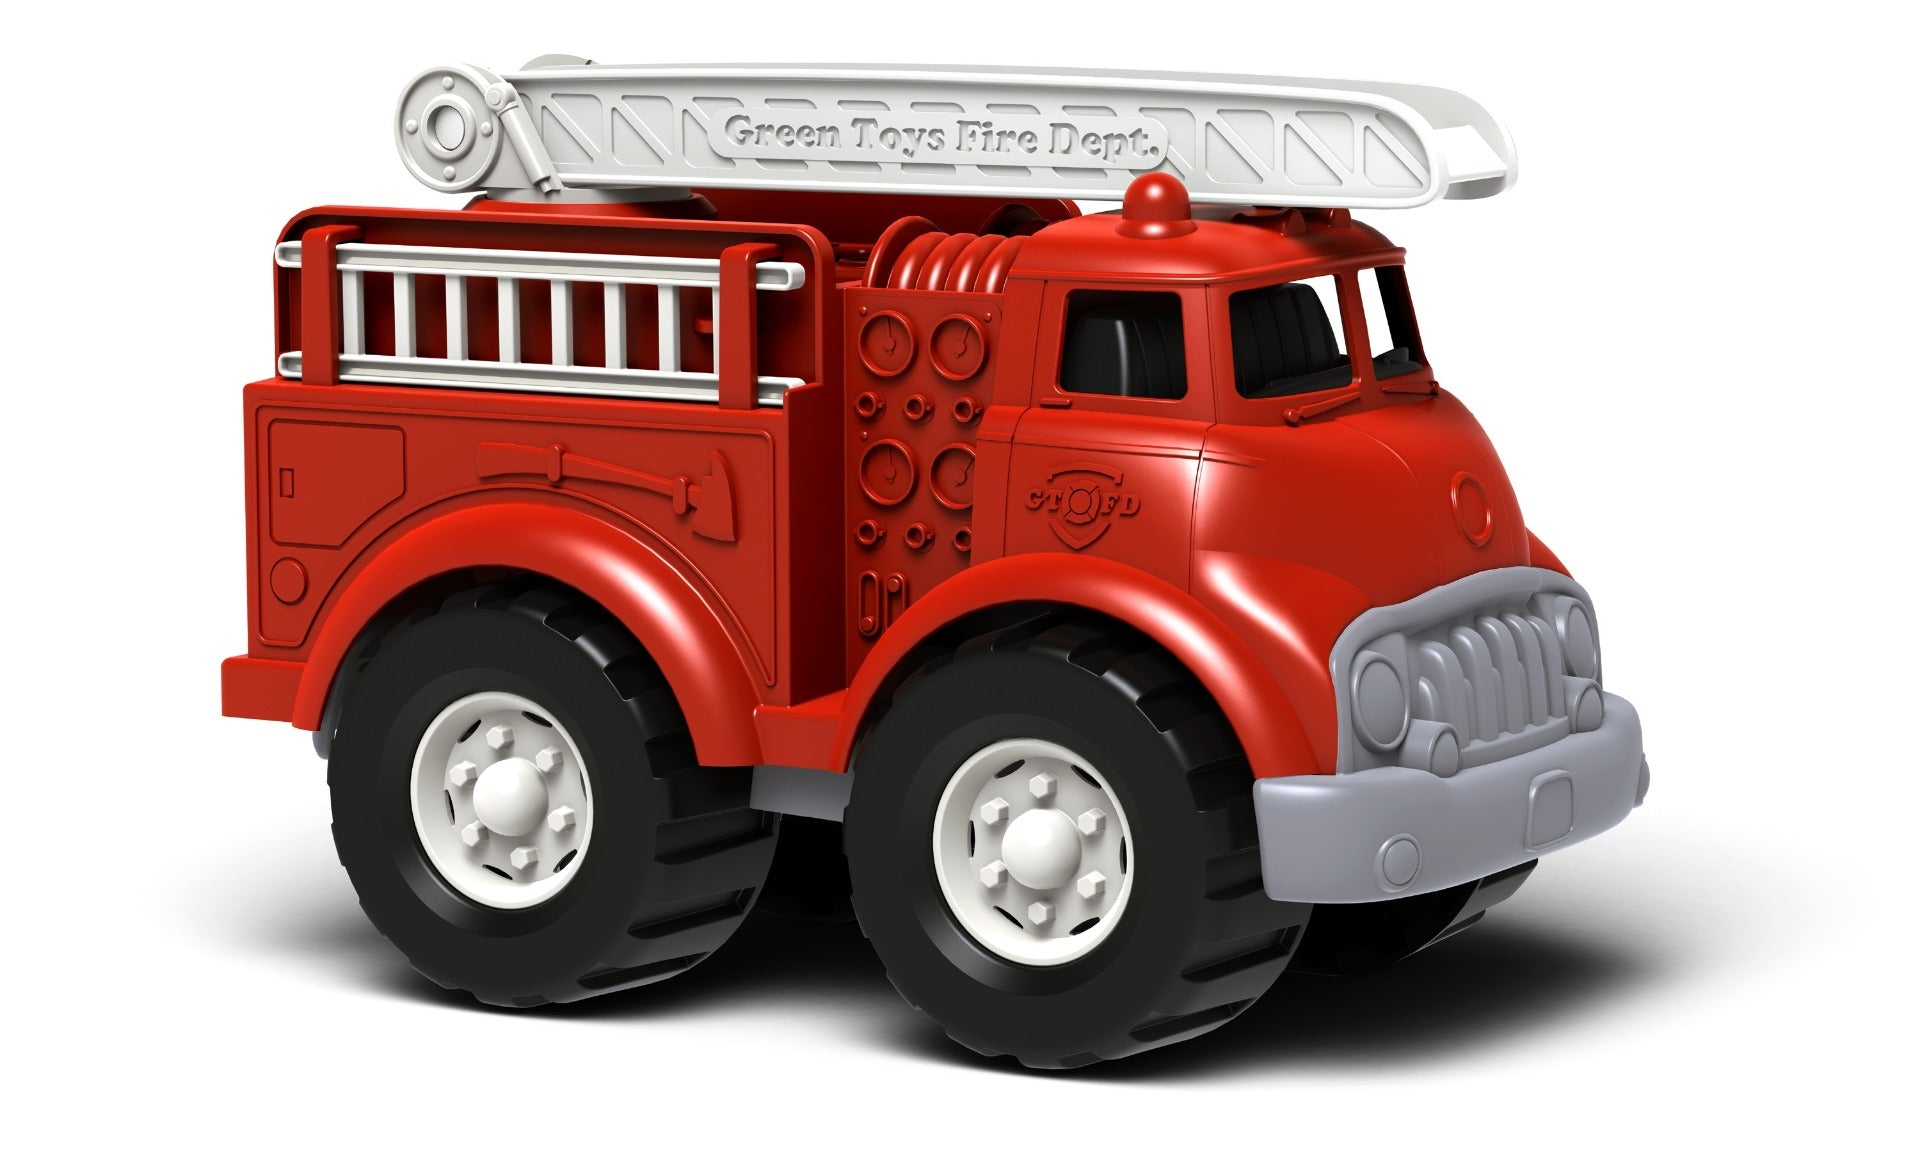 Green Toys Eco Friendly Fire Truck at Little Sprout